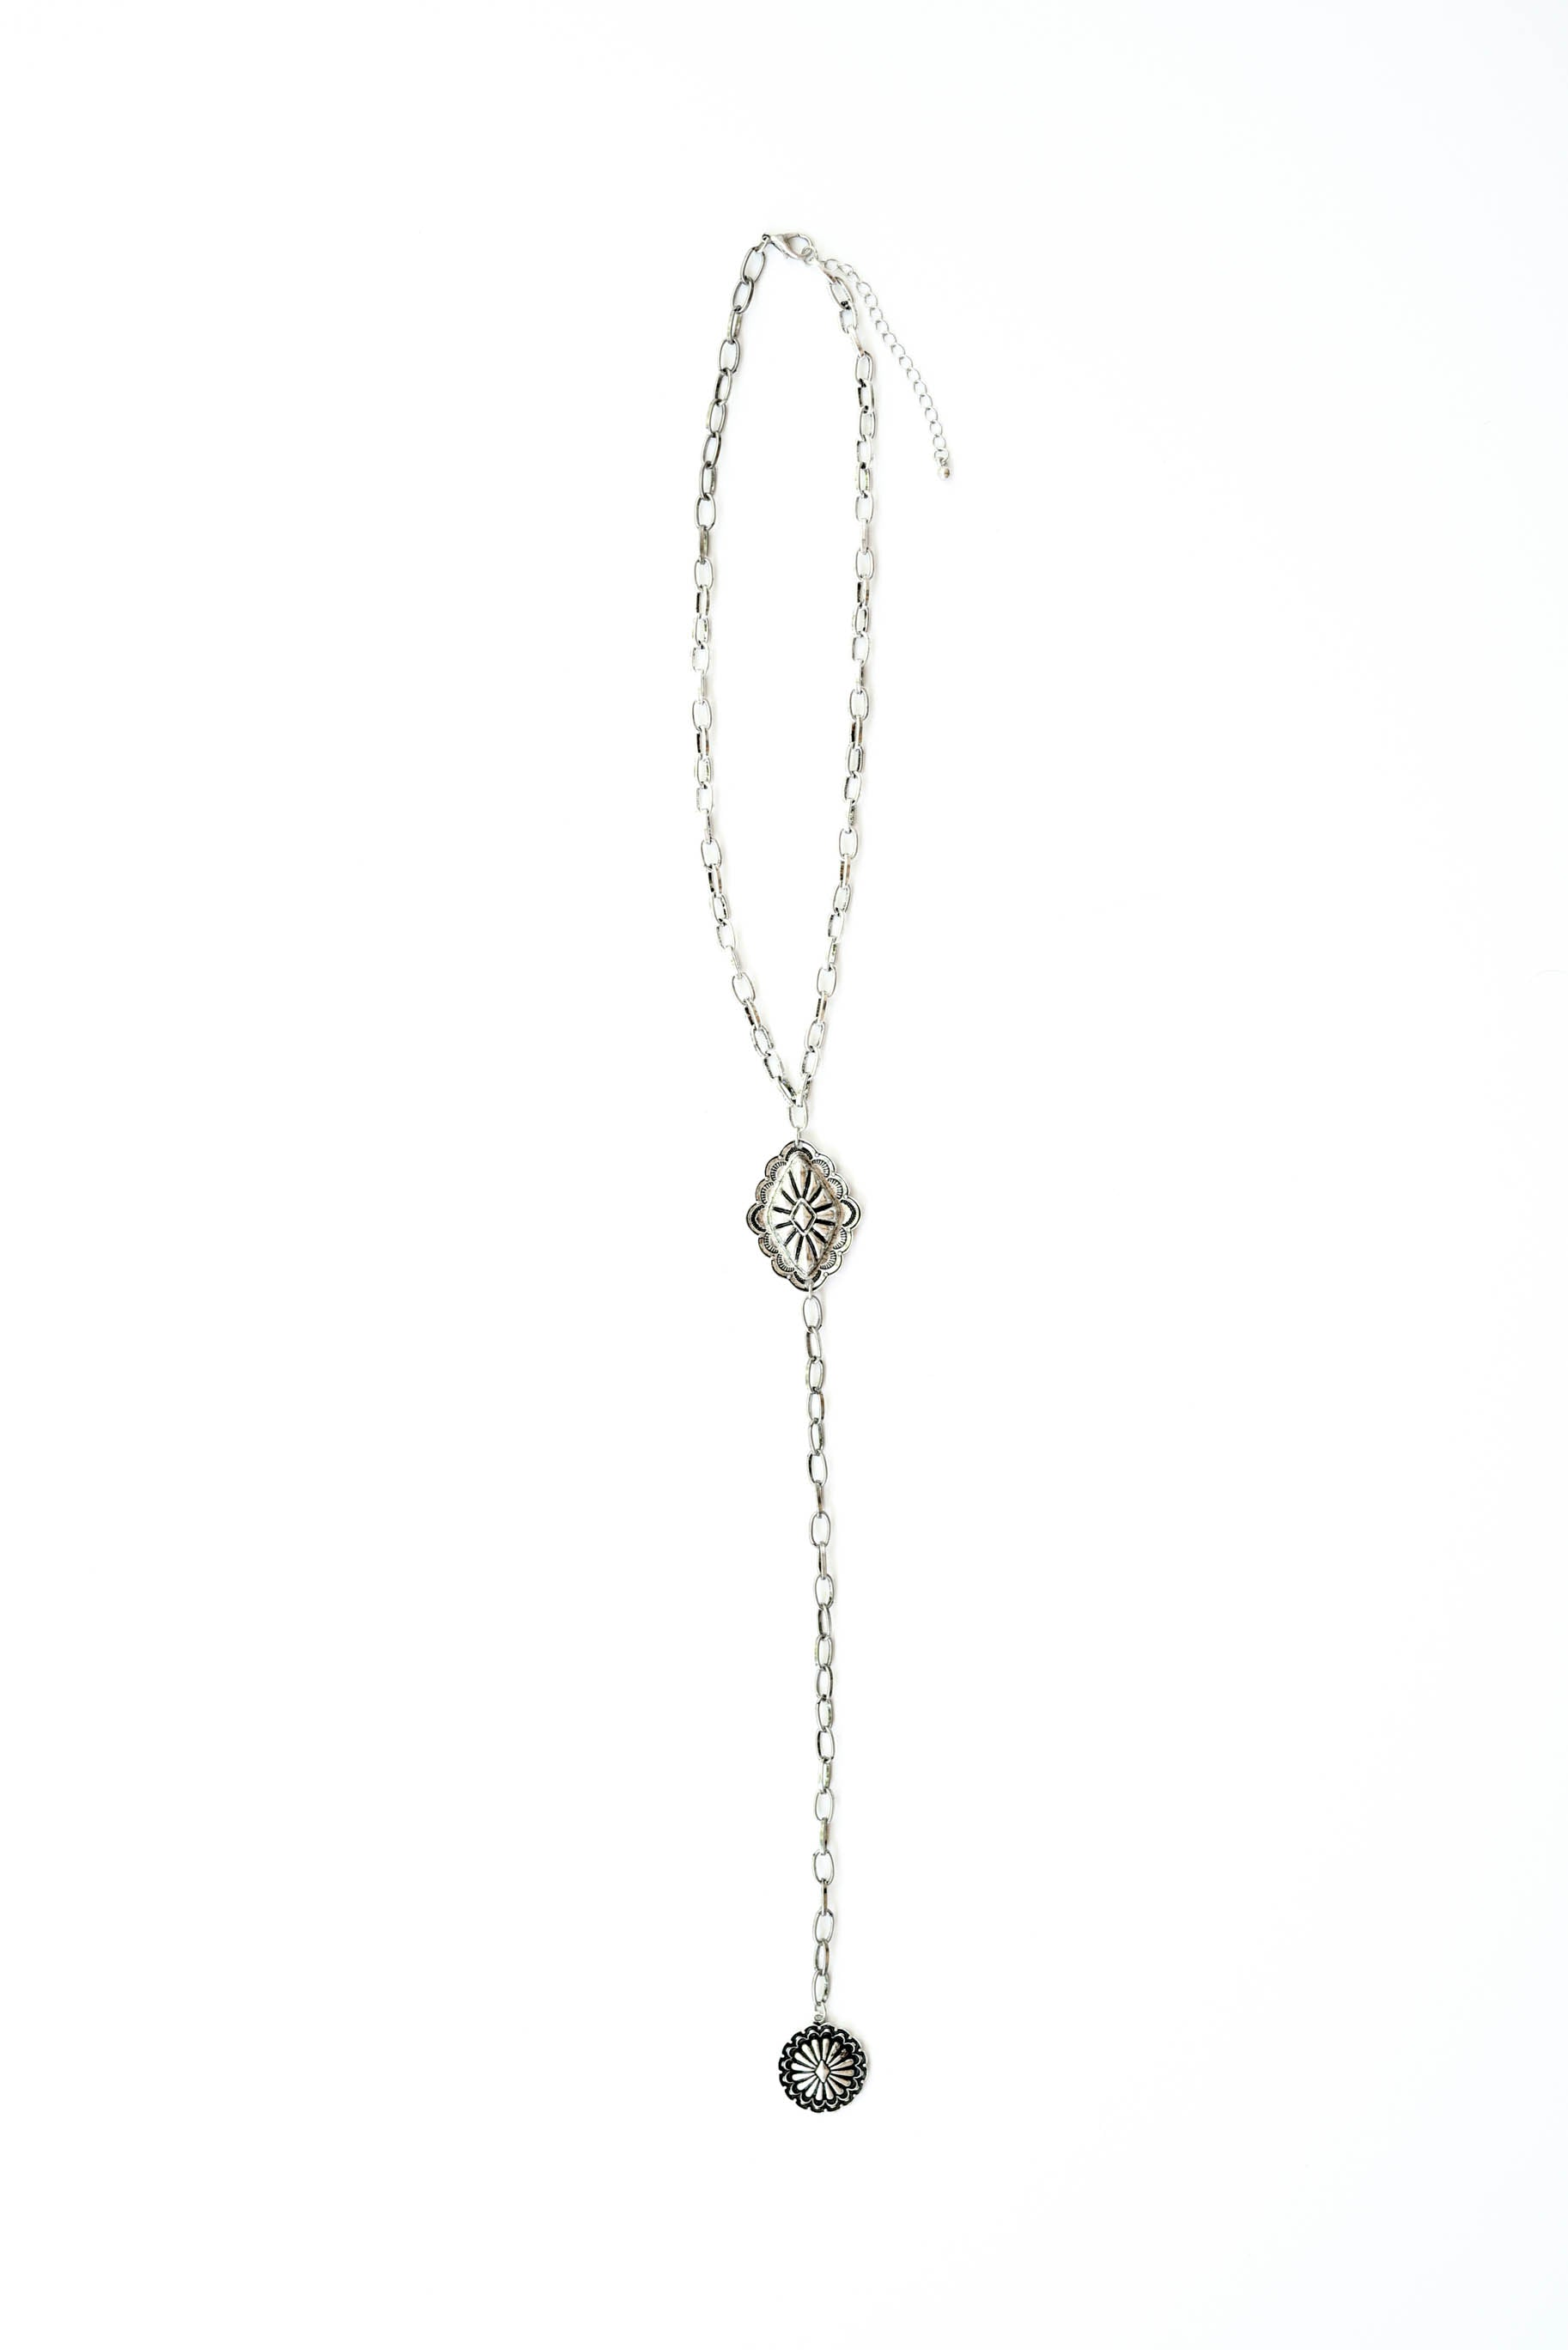 20in Silver Lariat Style Necklace with Silver Conchos